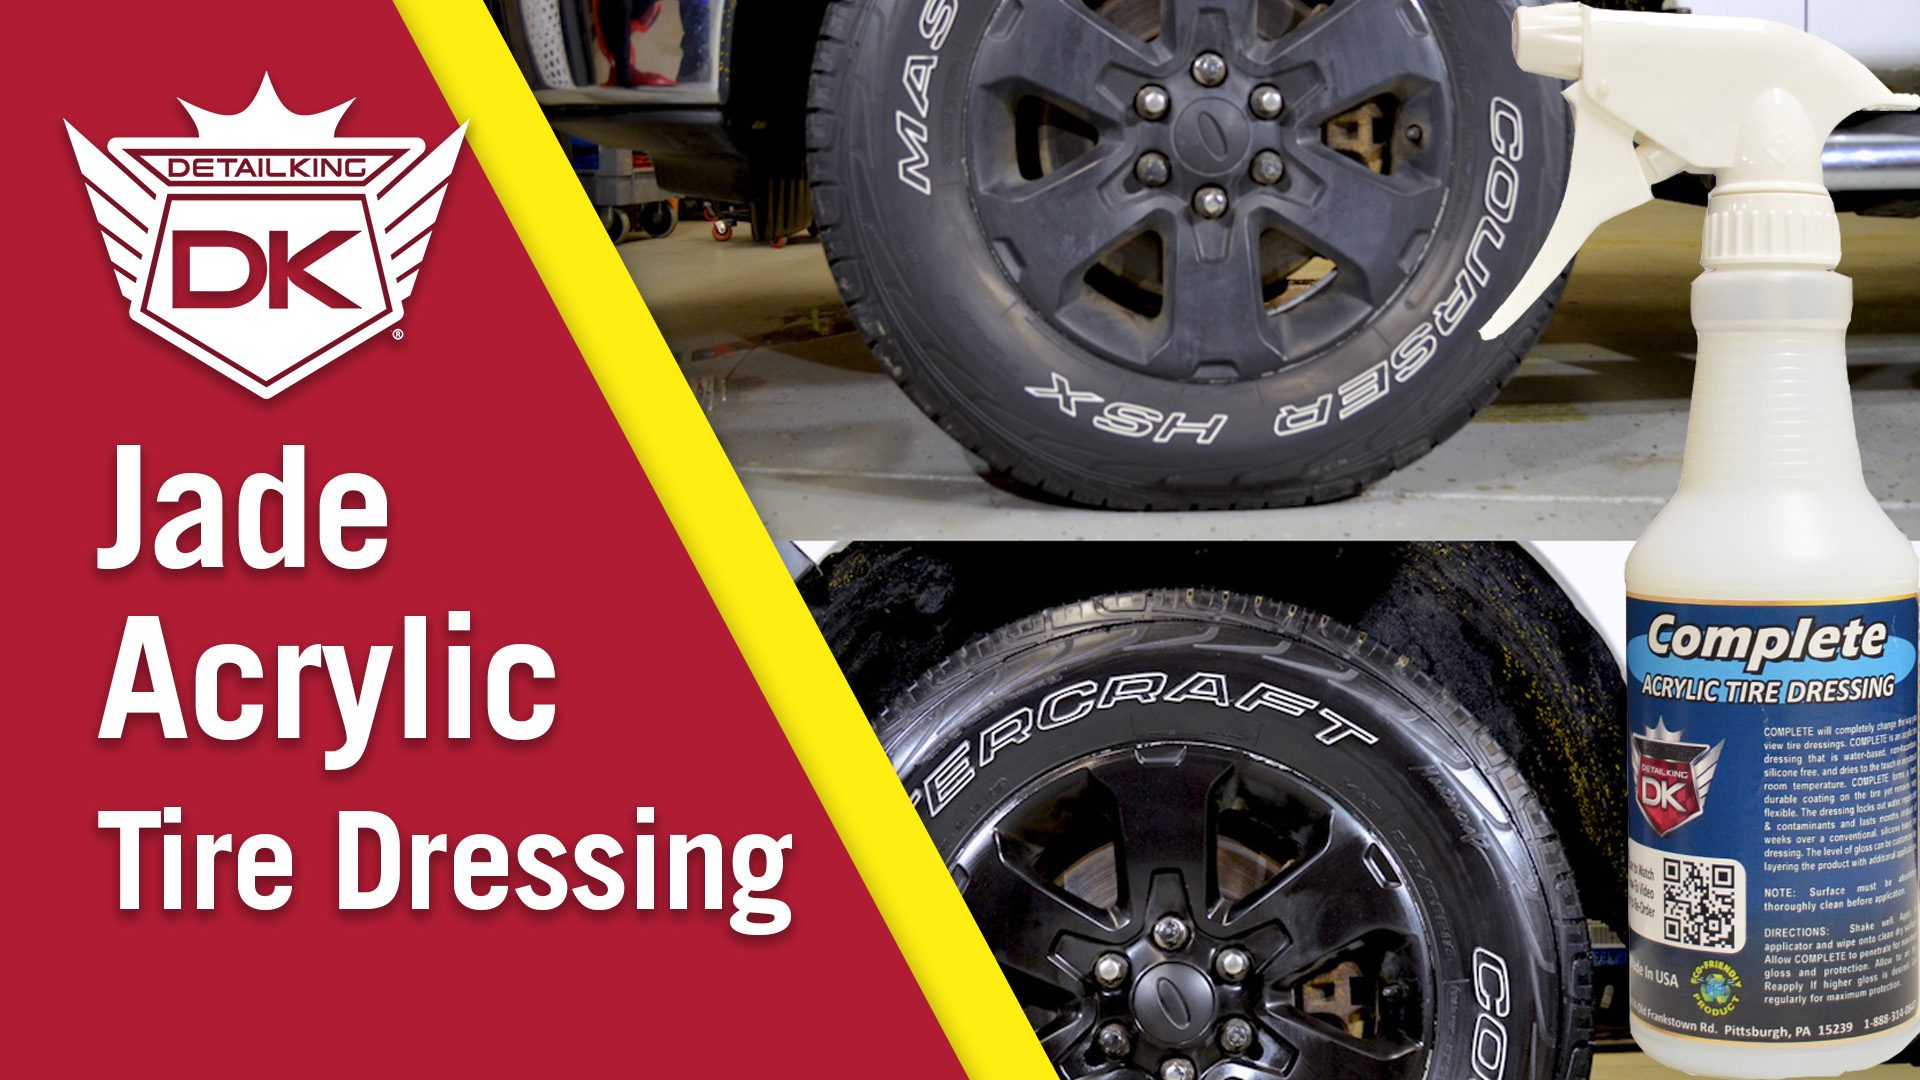 How To Restore and Protect Tires with Jade Complete Acrylic Tire Dressing